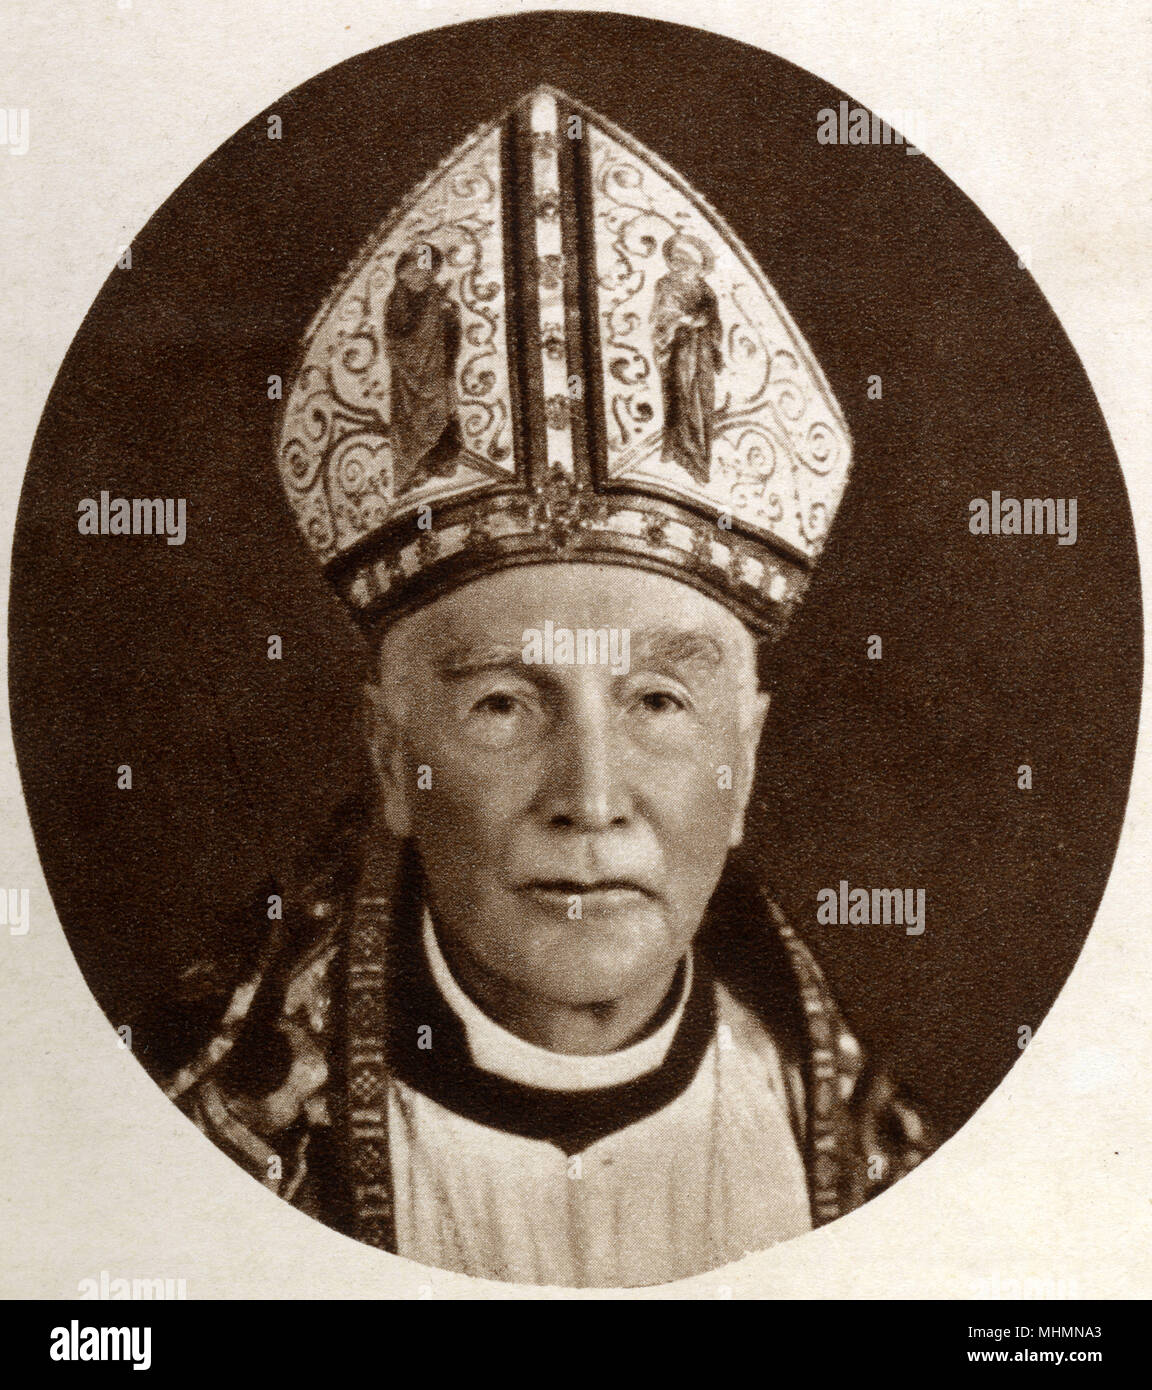 Arthur Foley Winnington-Ingram (18581946) - Bishop of London from 1901 to 1939 Photograph taken at the time of the coronation Book of King George VI and Queen Elizabeth on 12th May 1937.     Date: 1937 Stock Photo